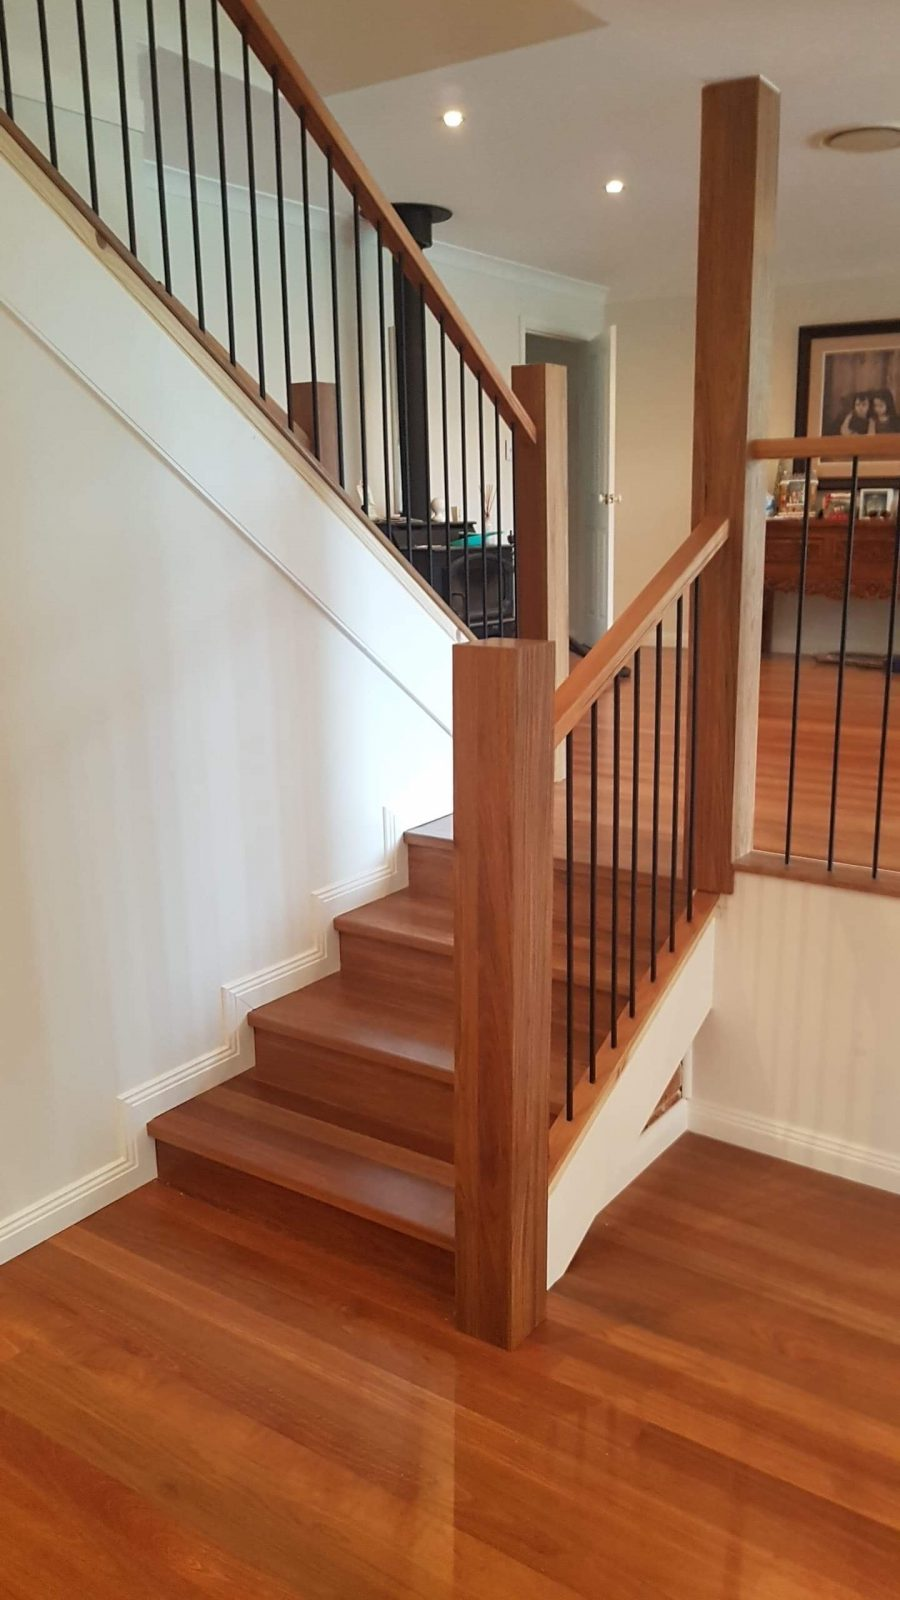 Designer Timber Staircases Solid stair treads and risers and bespoke Balusters - Staircase Makeover  by Timber Floors Pty Ltd